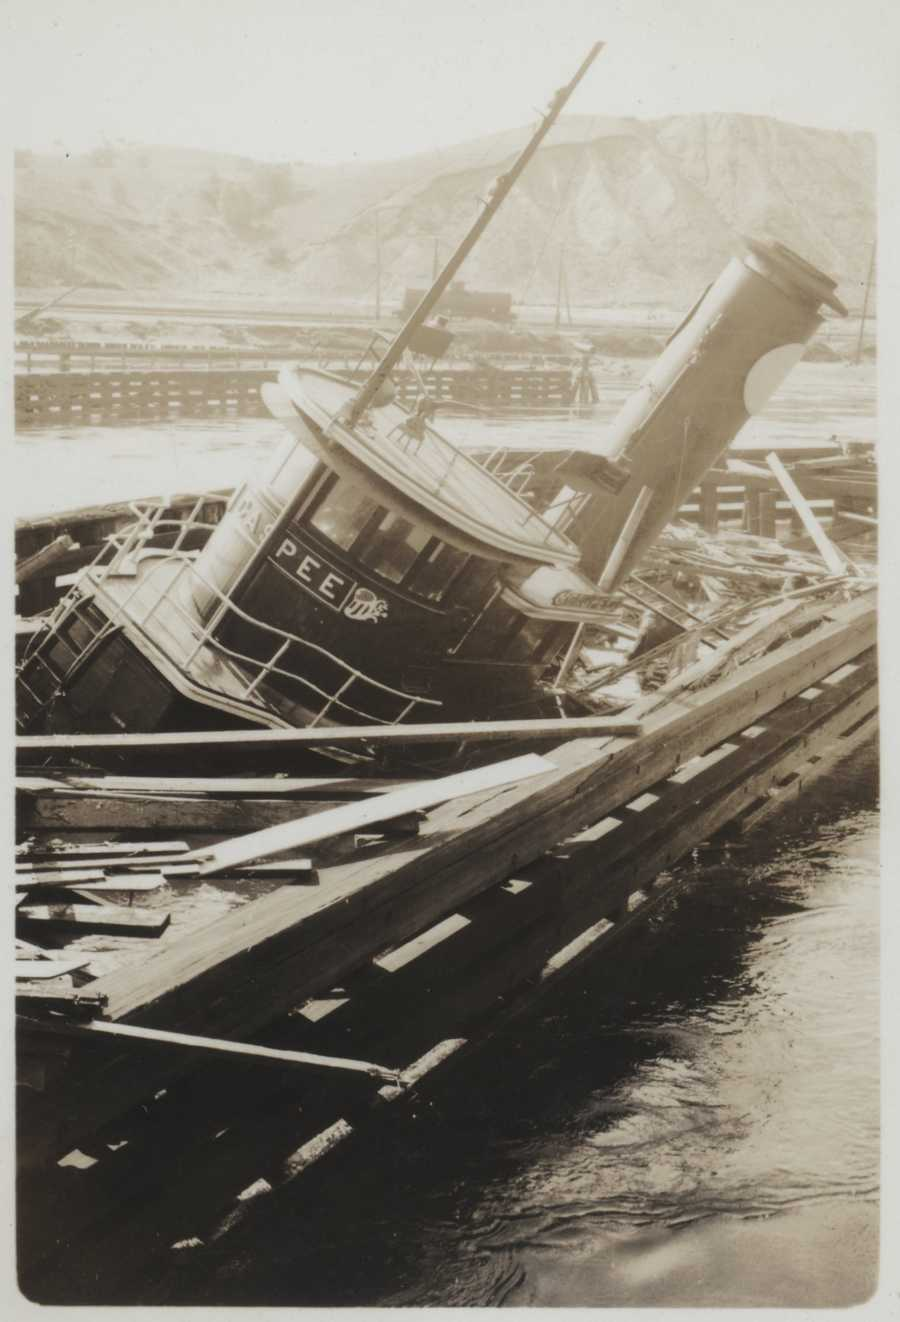 The tug Gaspee sitting on the bottom over a what appears to be the remains of a destroyed pier. New England Hurricane of 1938.